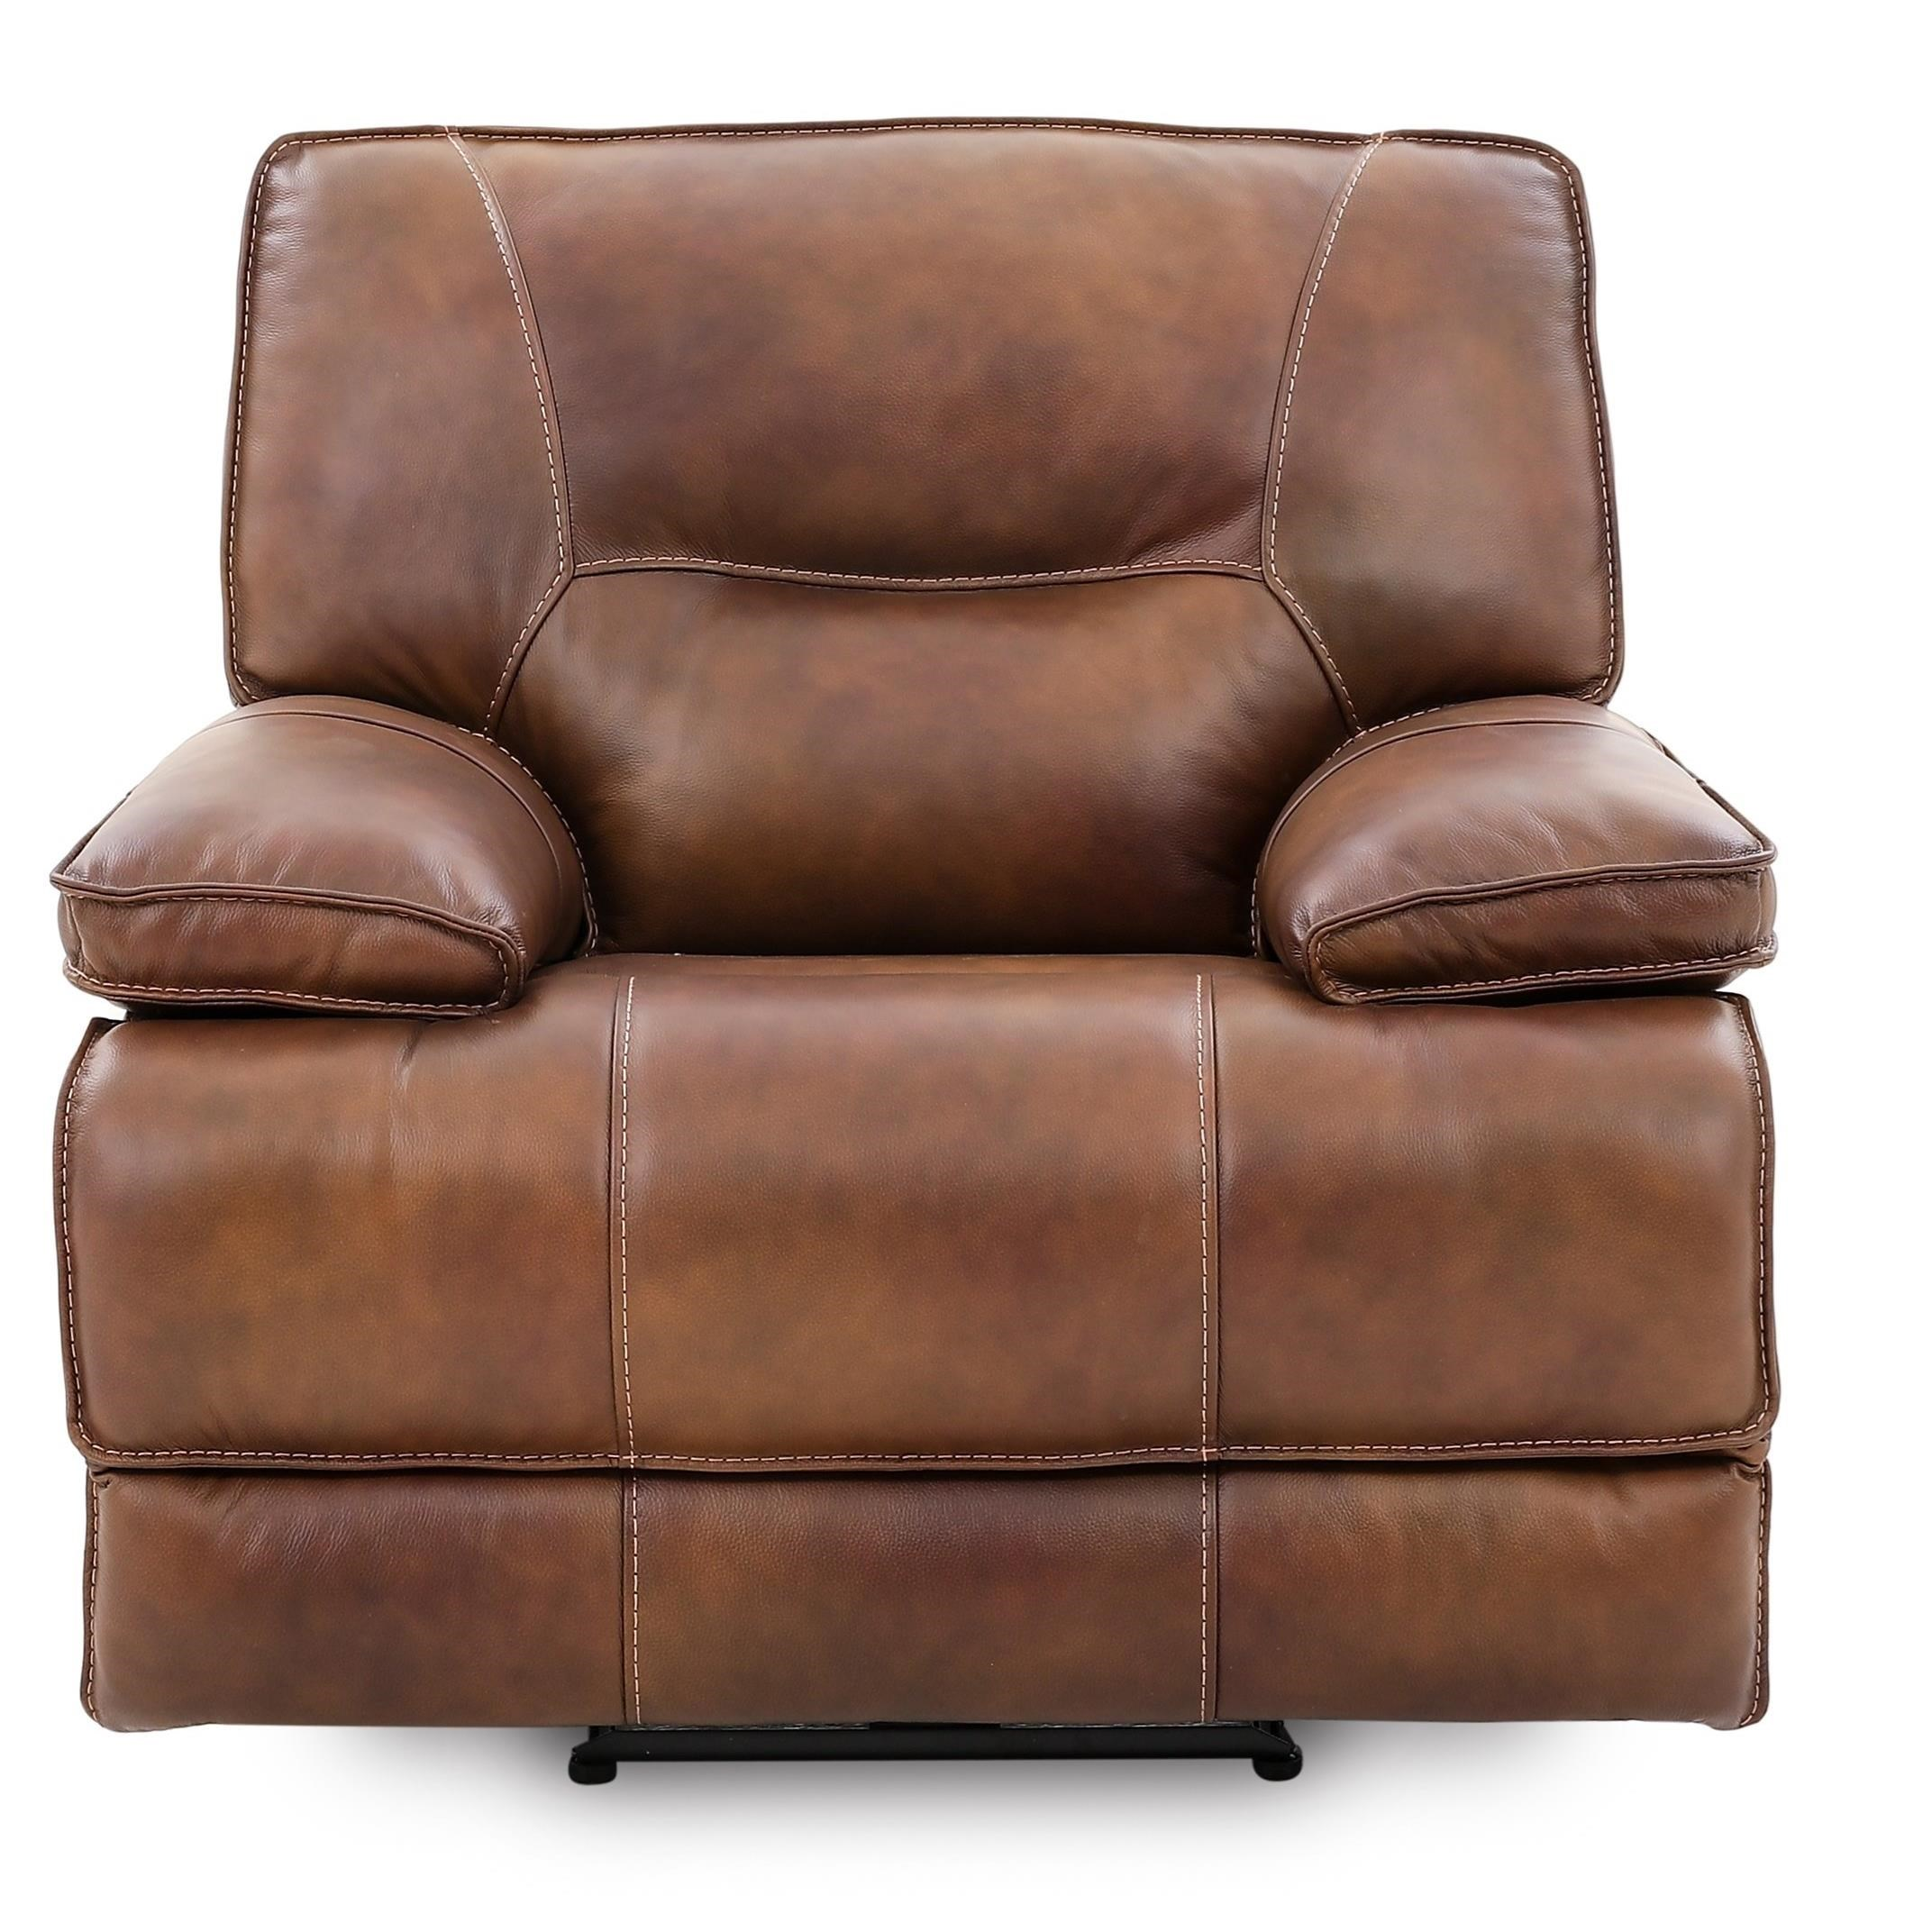 70048 Power Headrest Recliner by Cheers at Lagniappe Home Store